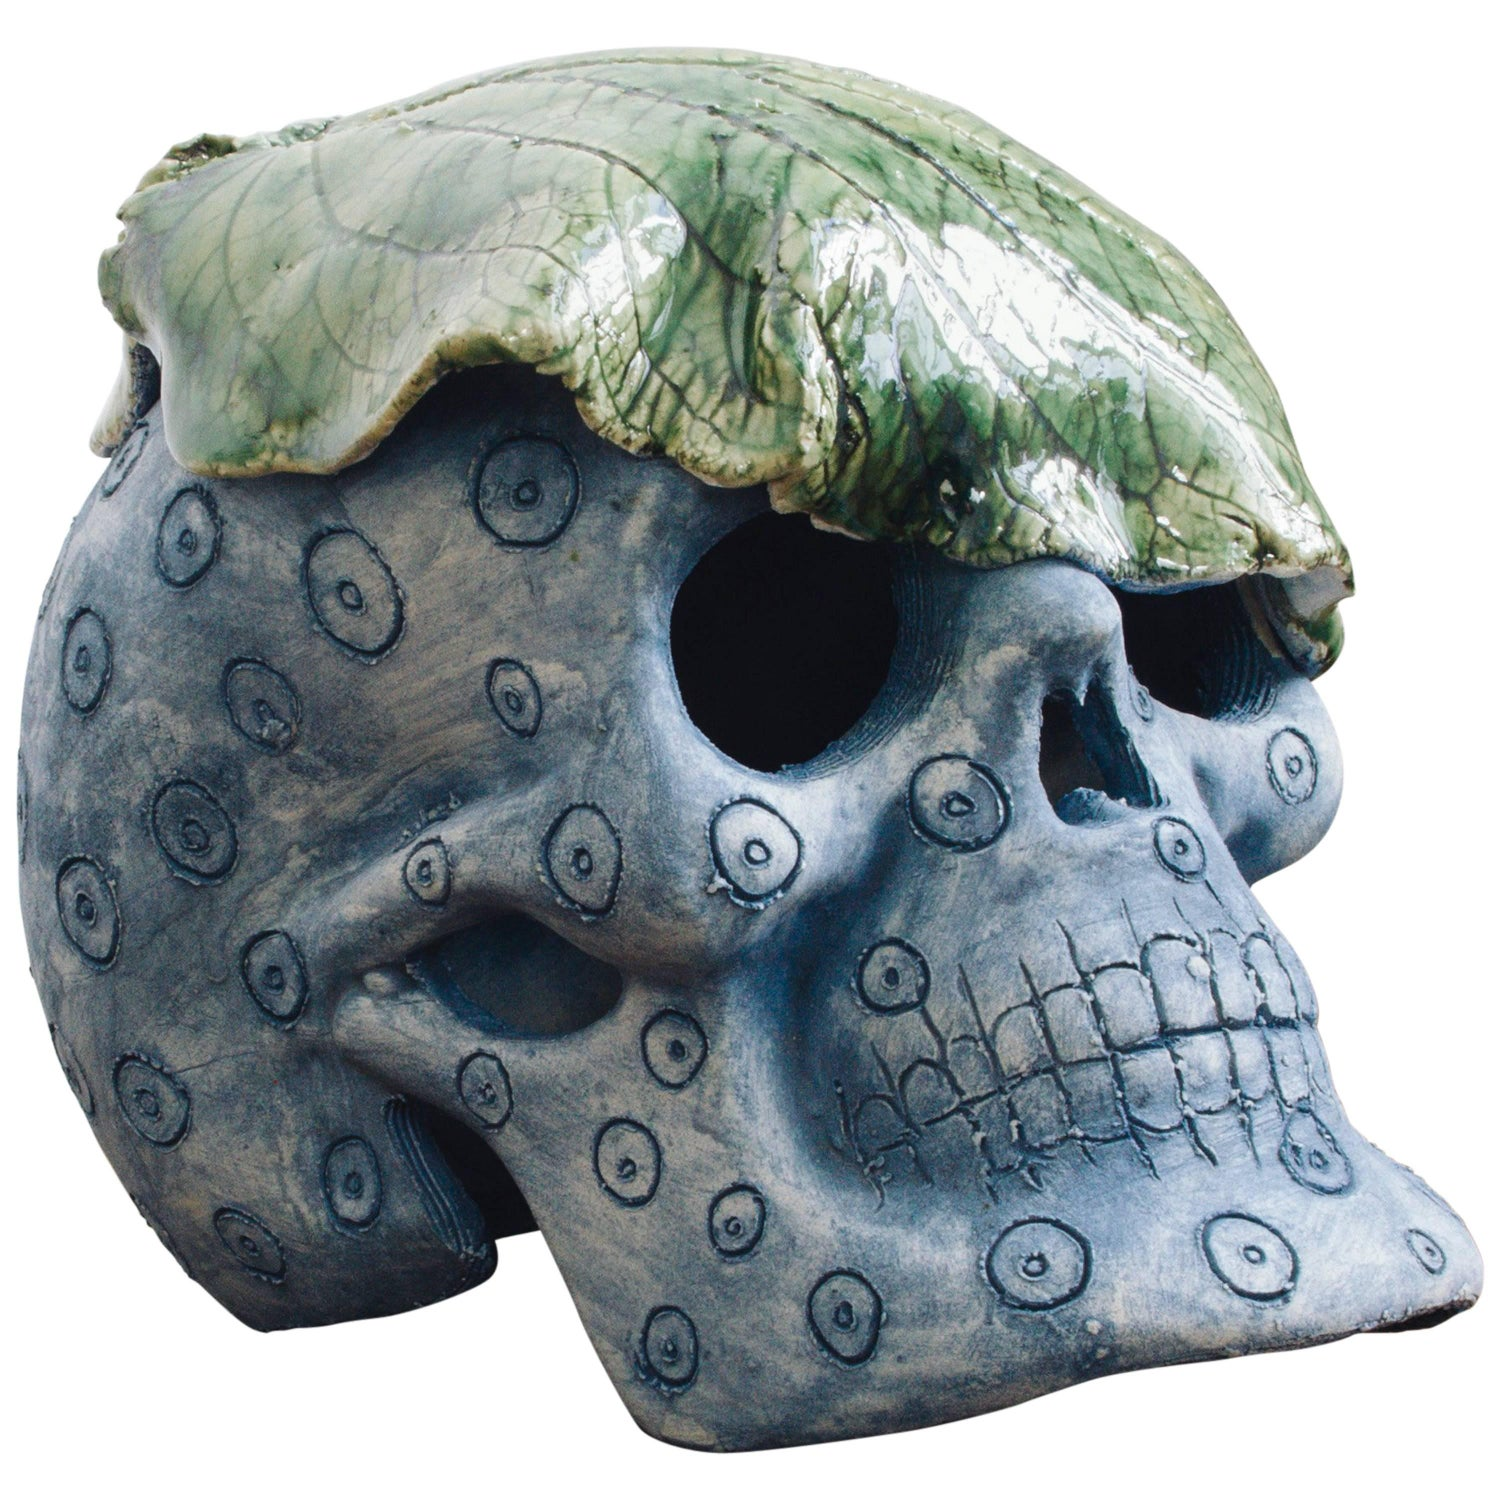 Clay sculptures 106 for sale at 1stdibs mexican day of the dead ceramic skull folk art sculpture edition 130 dailygadgetfo Choice Image